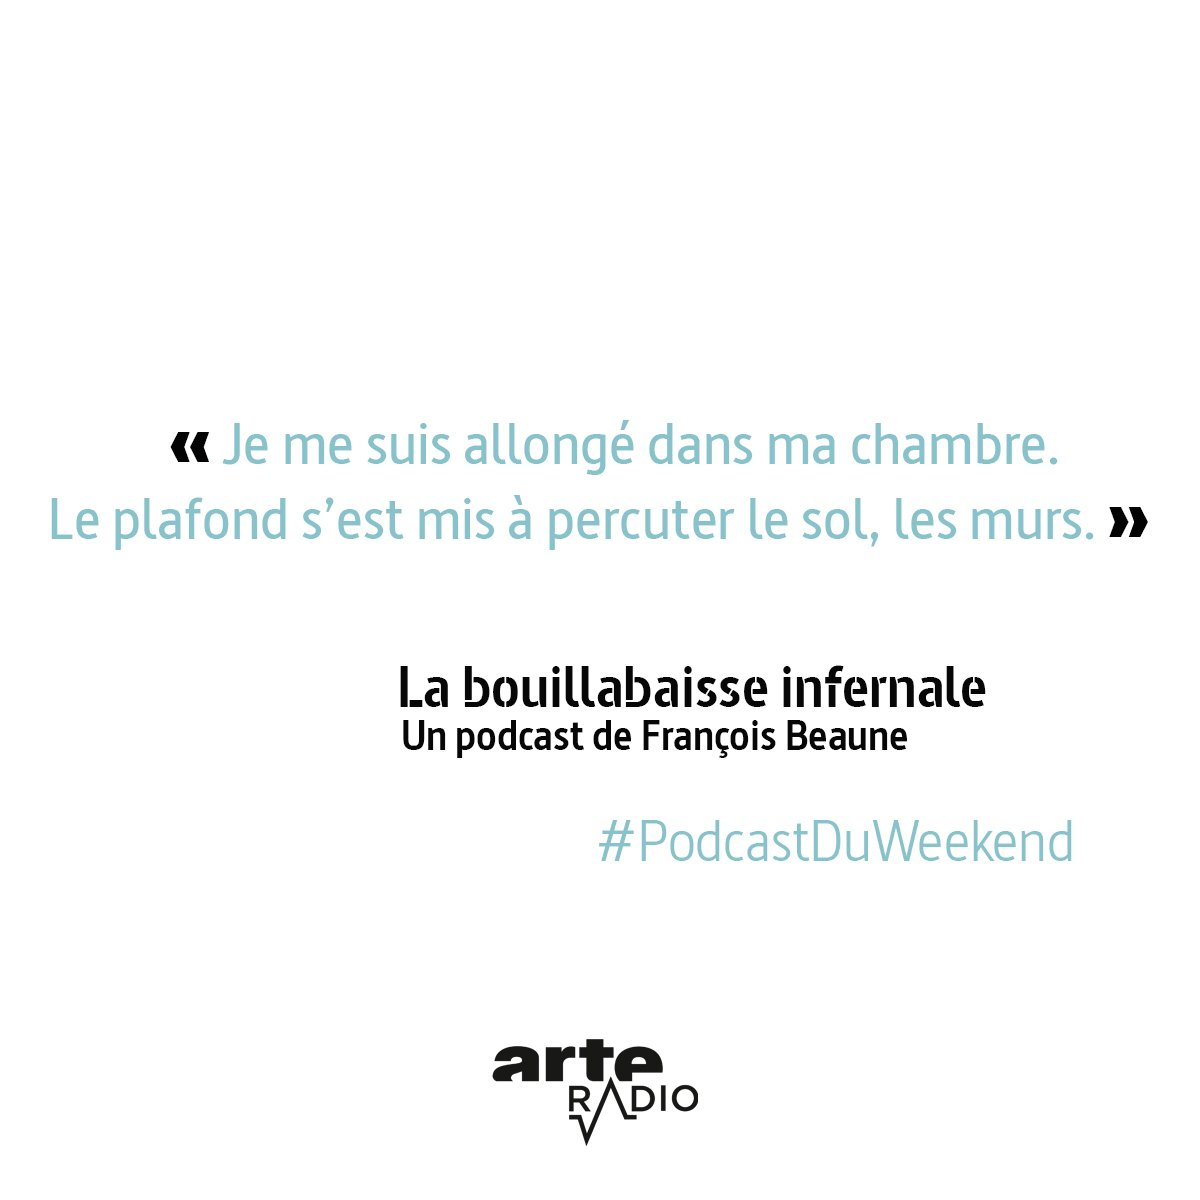 Arte Radio La Bouillabaisse Infernale Podcastduweekend Hashtag On Twitter